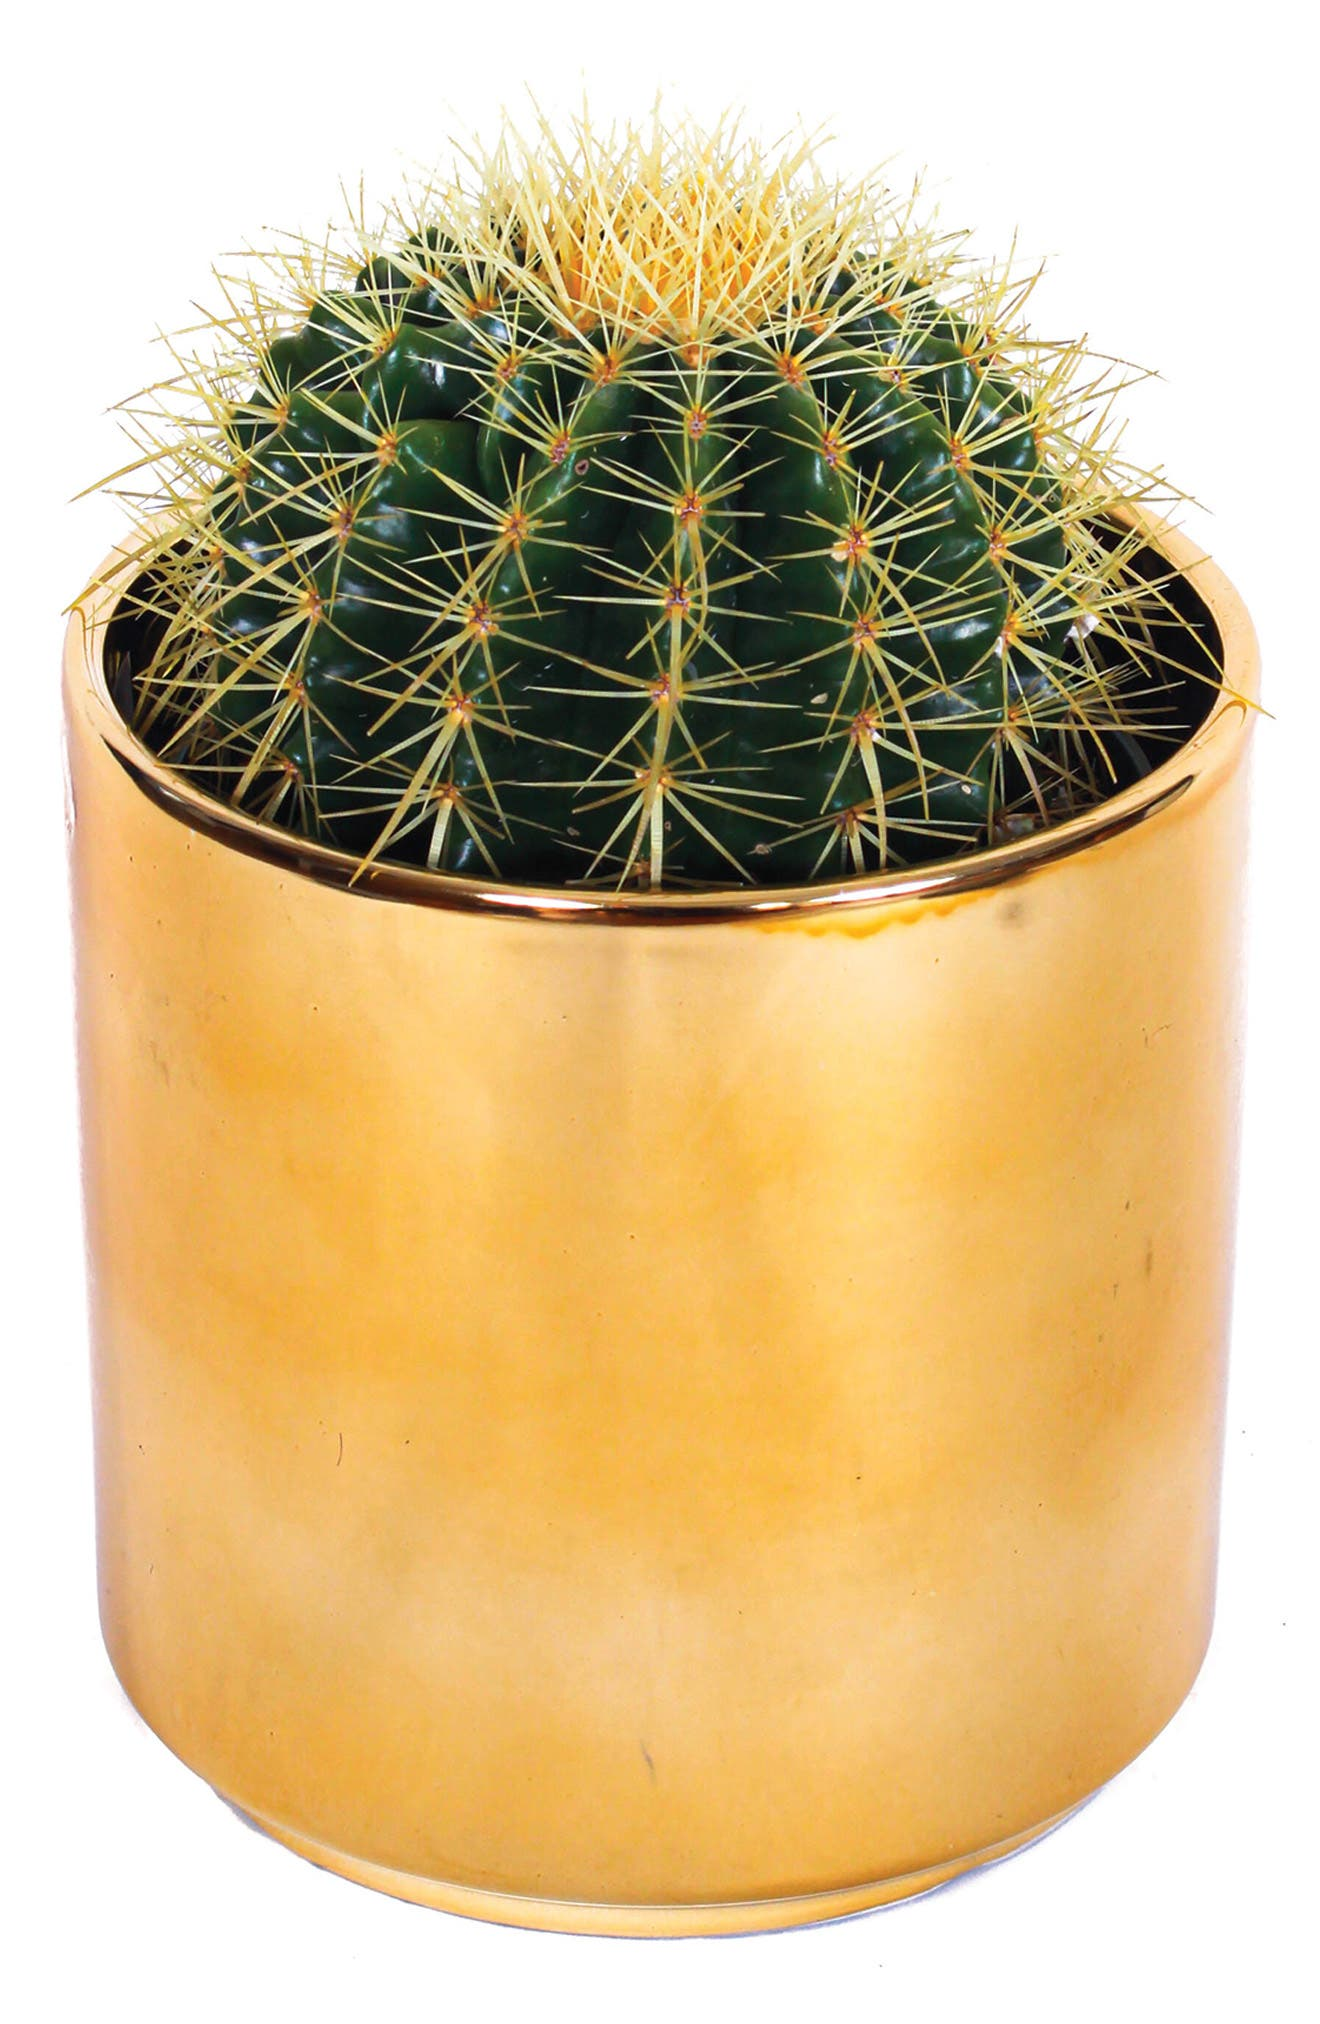 Get grounded with this living Golden Barrel cactus, from a company with a mission to help us appreciate the synergy between plants and humans. Complete with its own pot, this sun-loving cactus requires low-to-moderate maintenance and infrequent watering. Style Name: Grounded Golden Barrel Cactus & Planter. Style Number: 6166826. Available in stores.